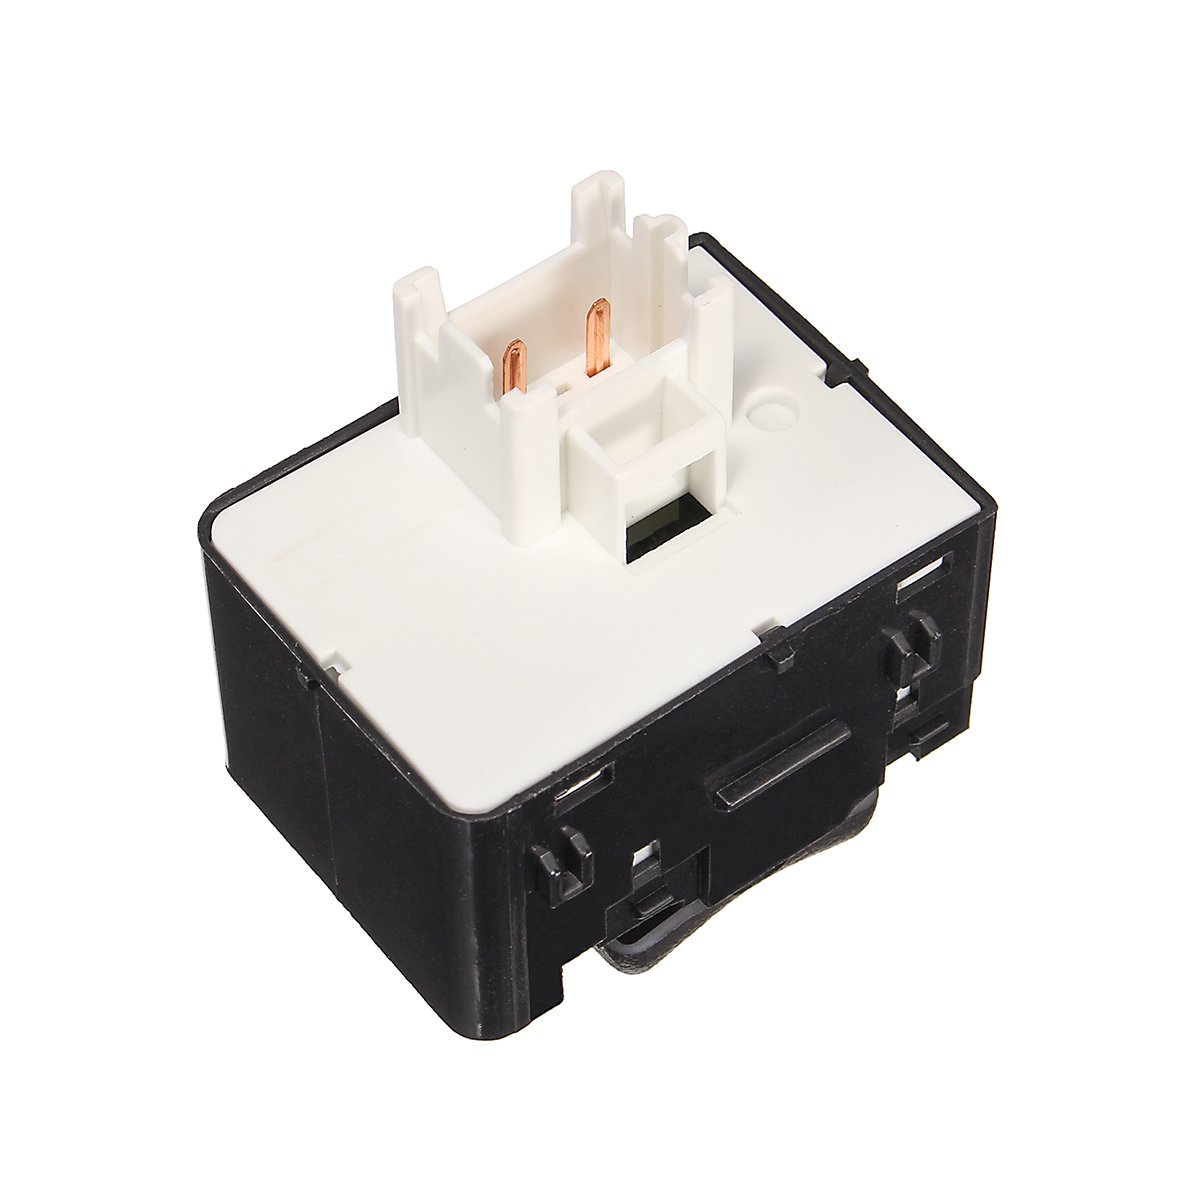 Master Window Switch For Chevy Cavalier Convertible Coupe 2000-2005 22610144